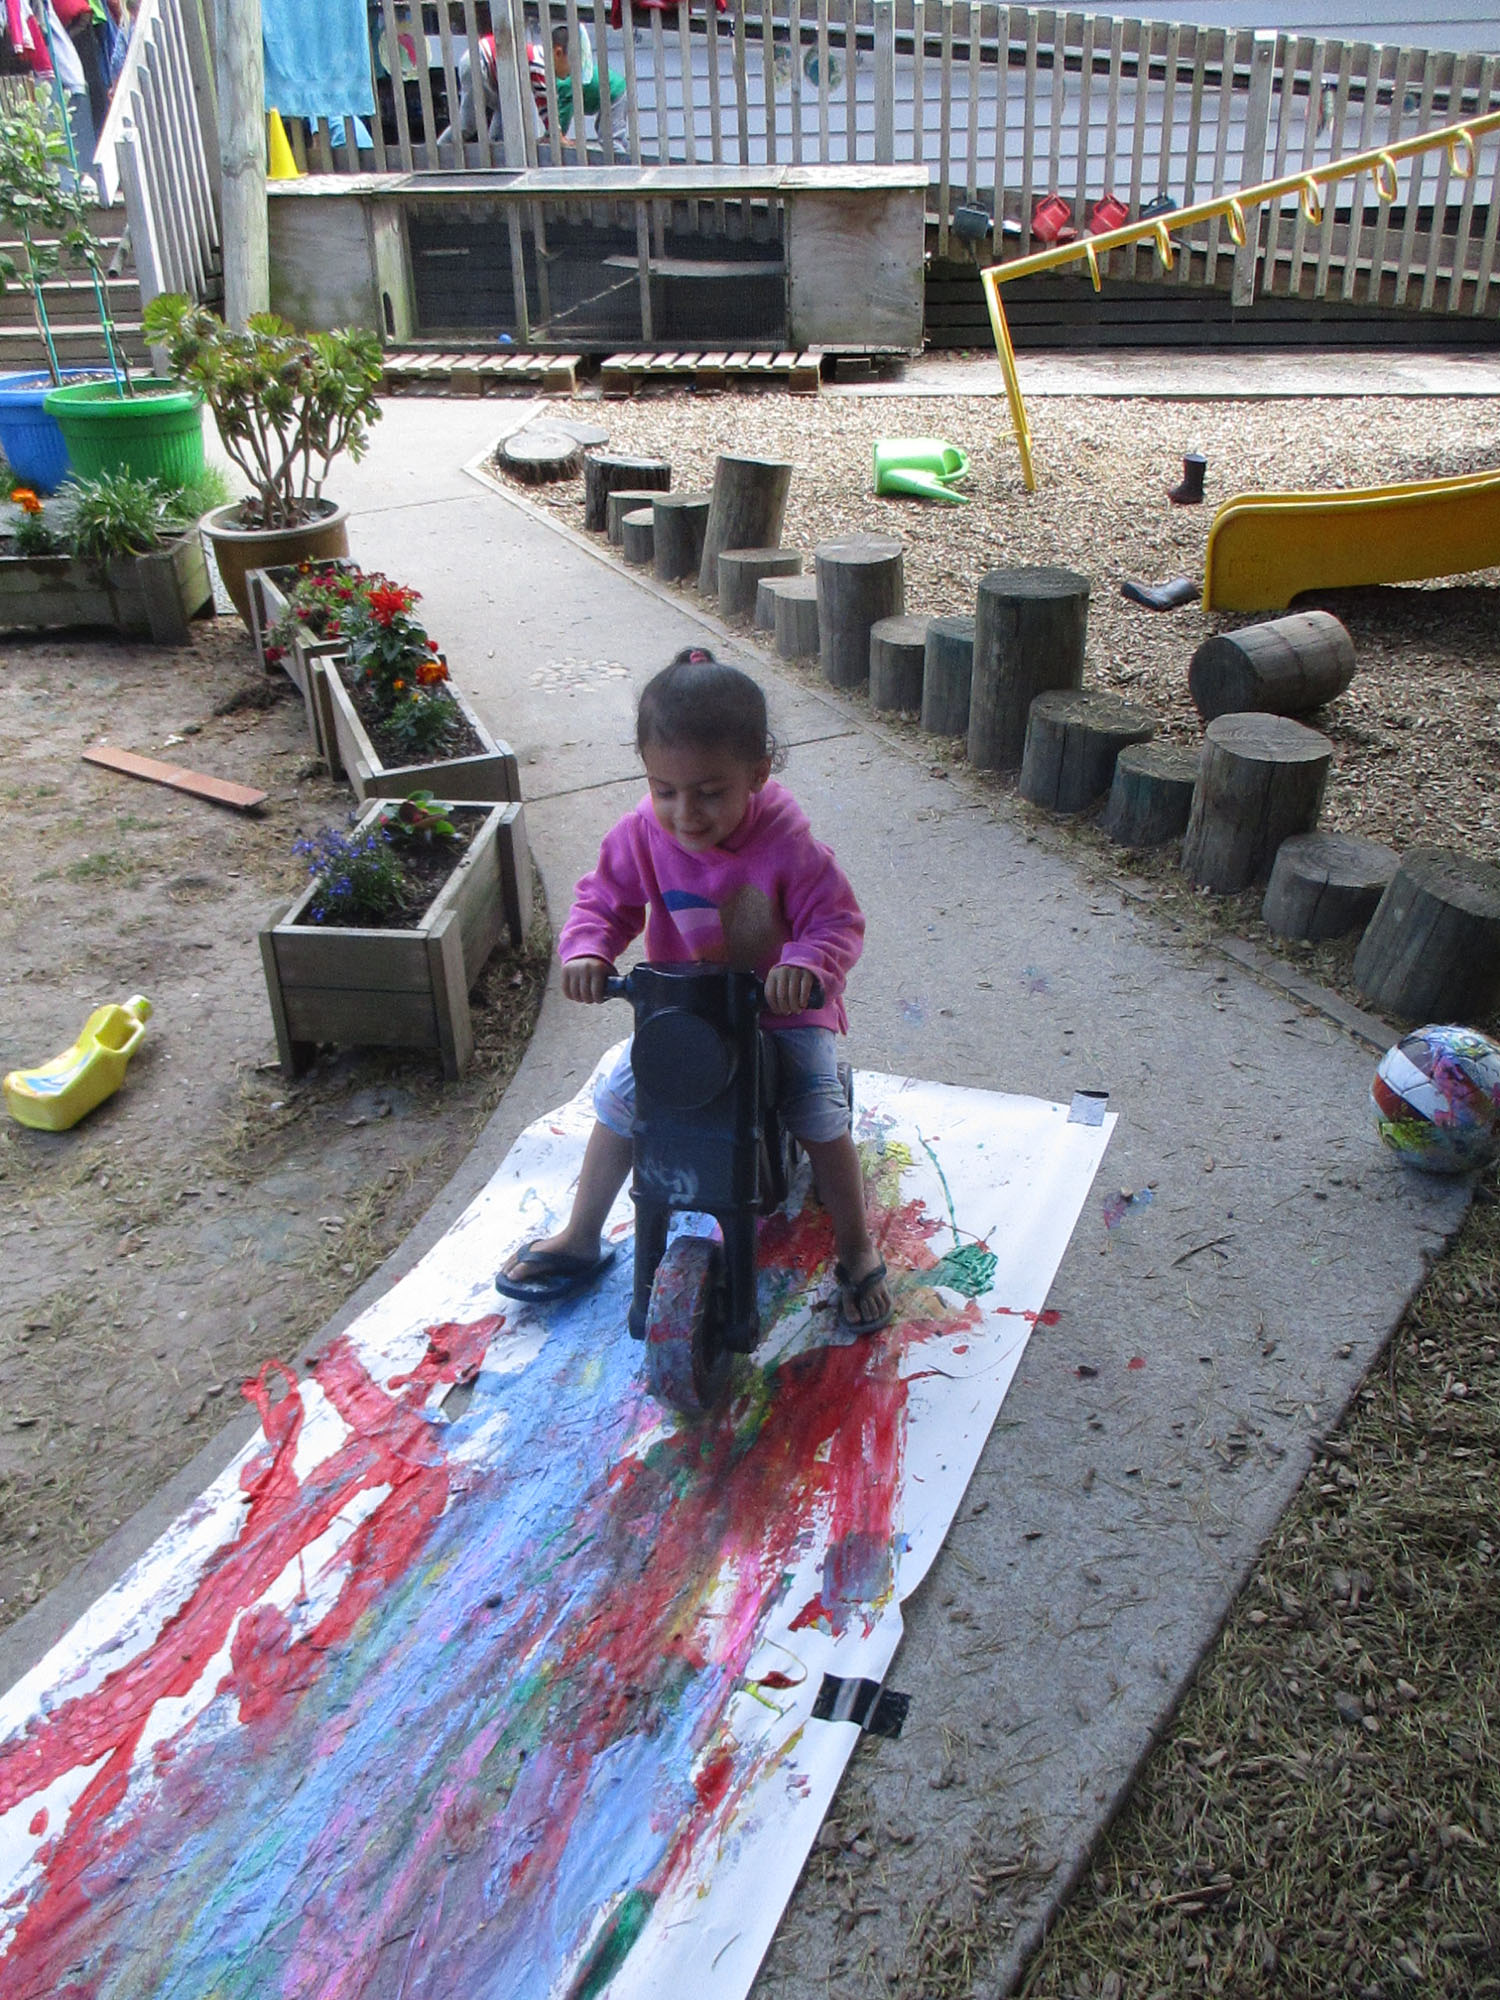 Exploring paint in different ways